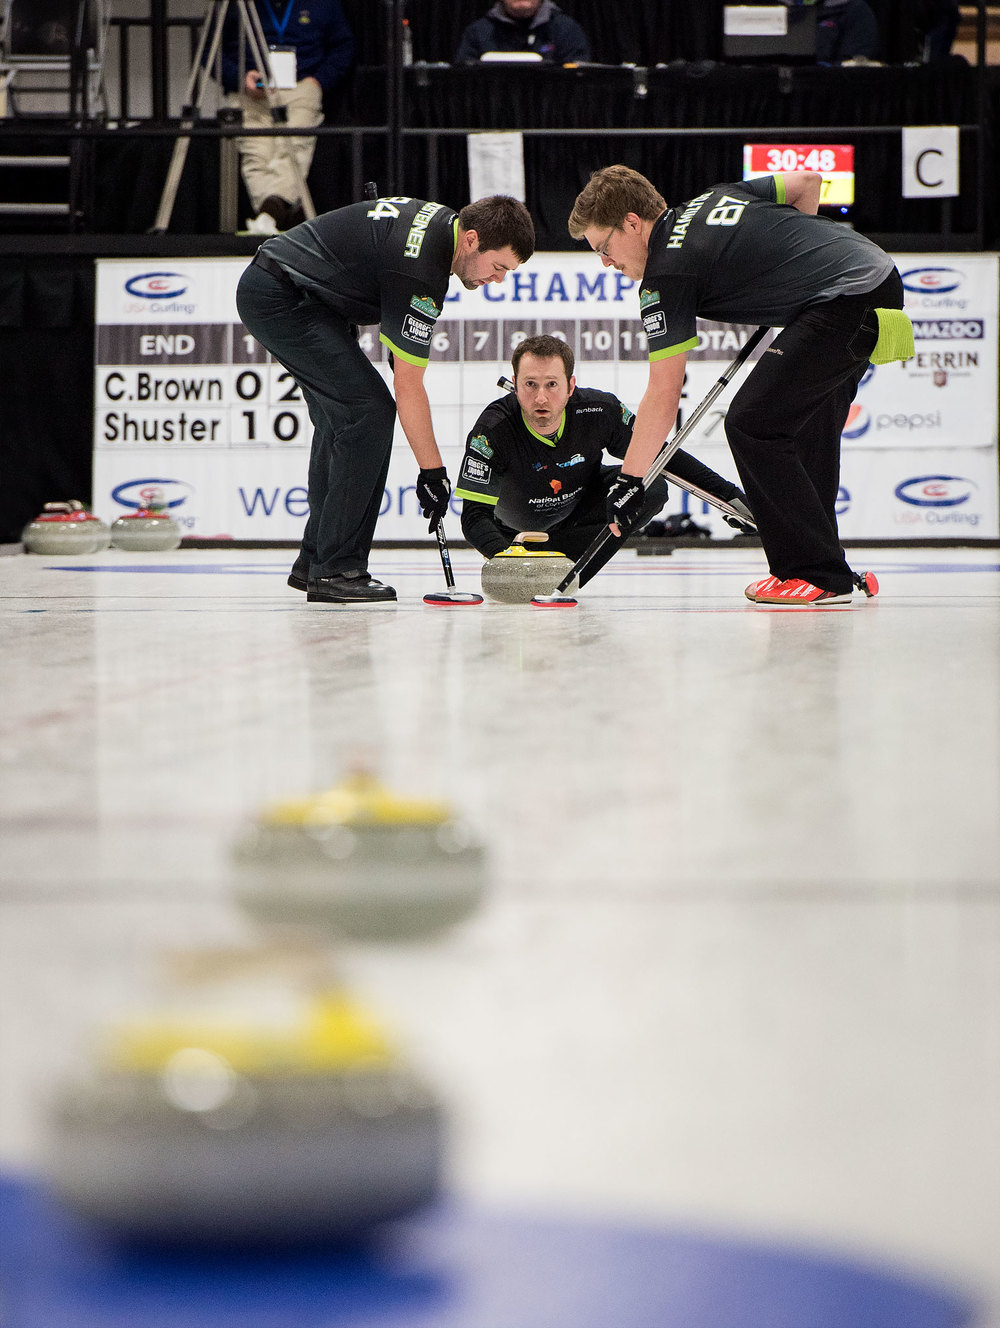 USA-Curling-Nationals-446.jpg